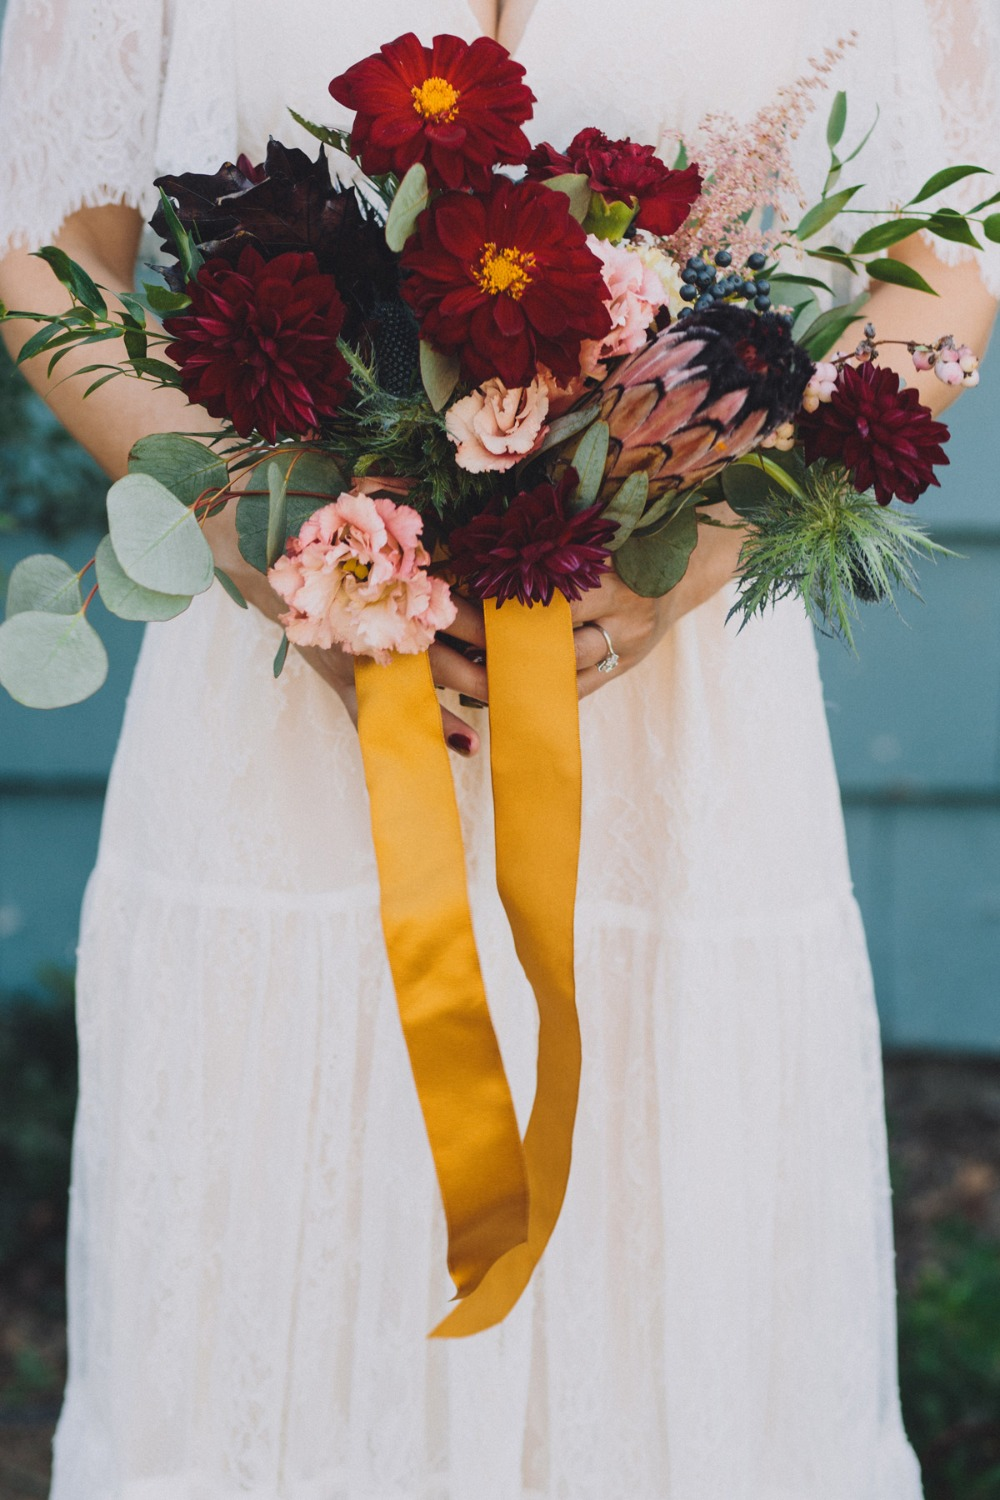 Wedding bouquet with yellow ribbon